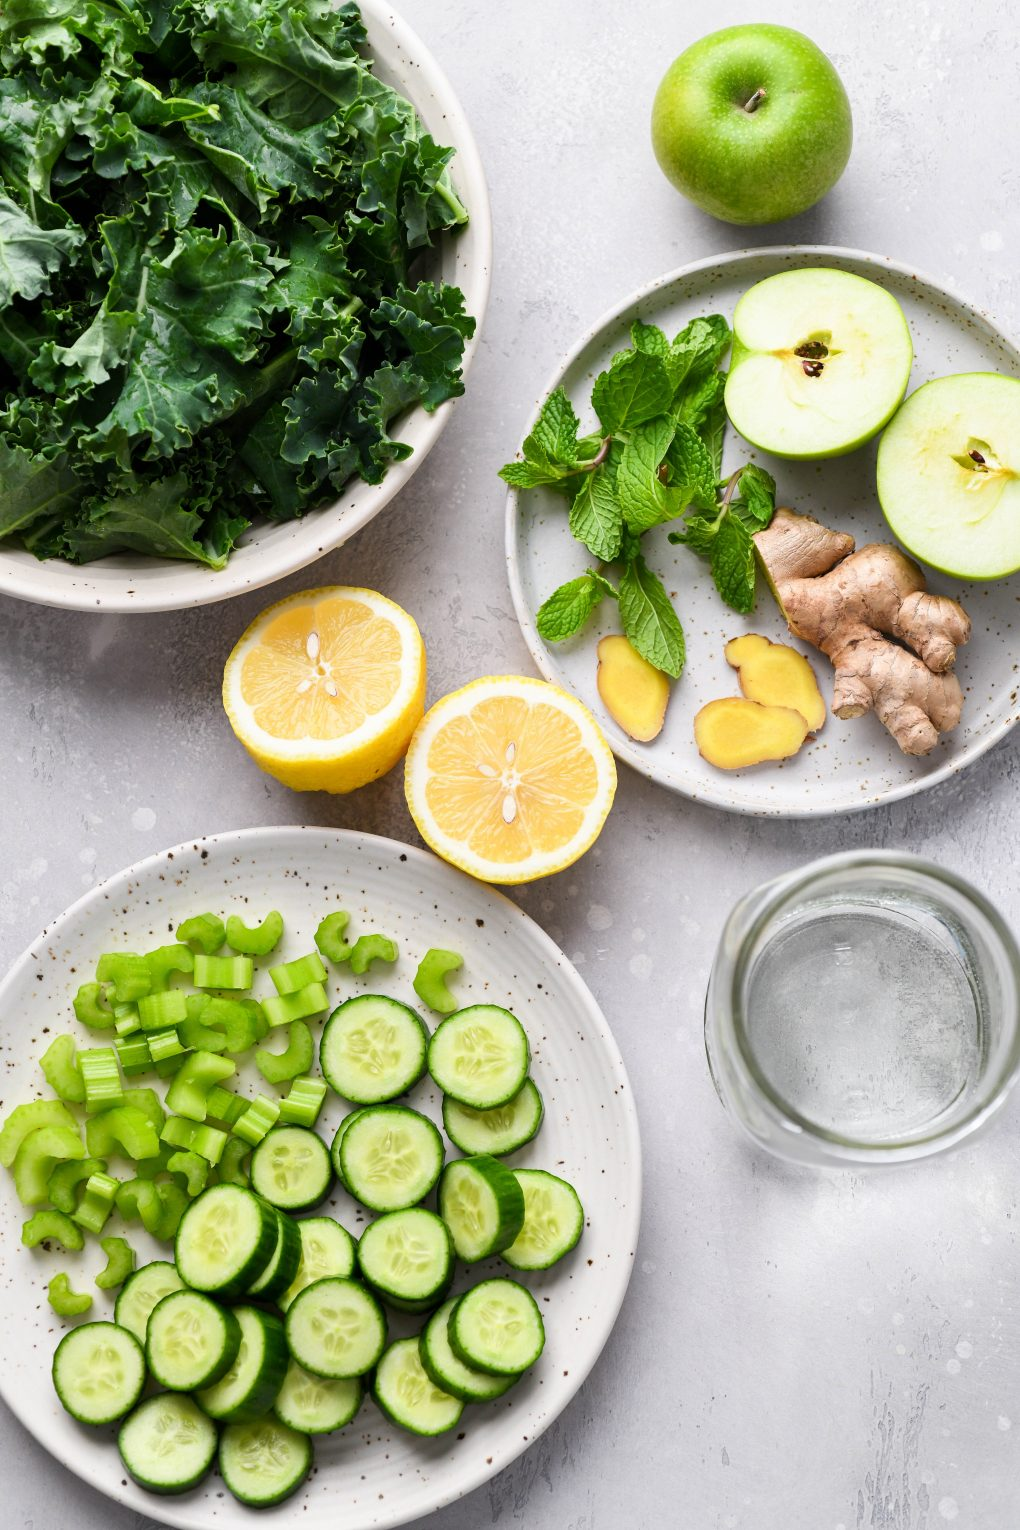 Overhead shot of the various ingredients used to make green juice in a blender. A Large white speckled bowl filled with kale leaves, a small plate with a cut apple, fresh mint, cut ginger, a lemon cut in half, another plate with sliced celery, sliced cucumber, and a mason jar with water. On a light grey background.